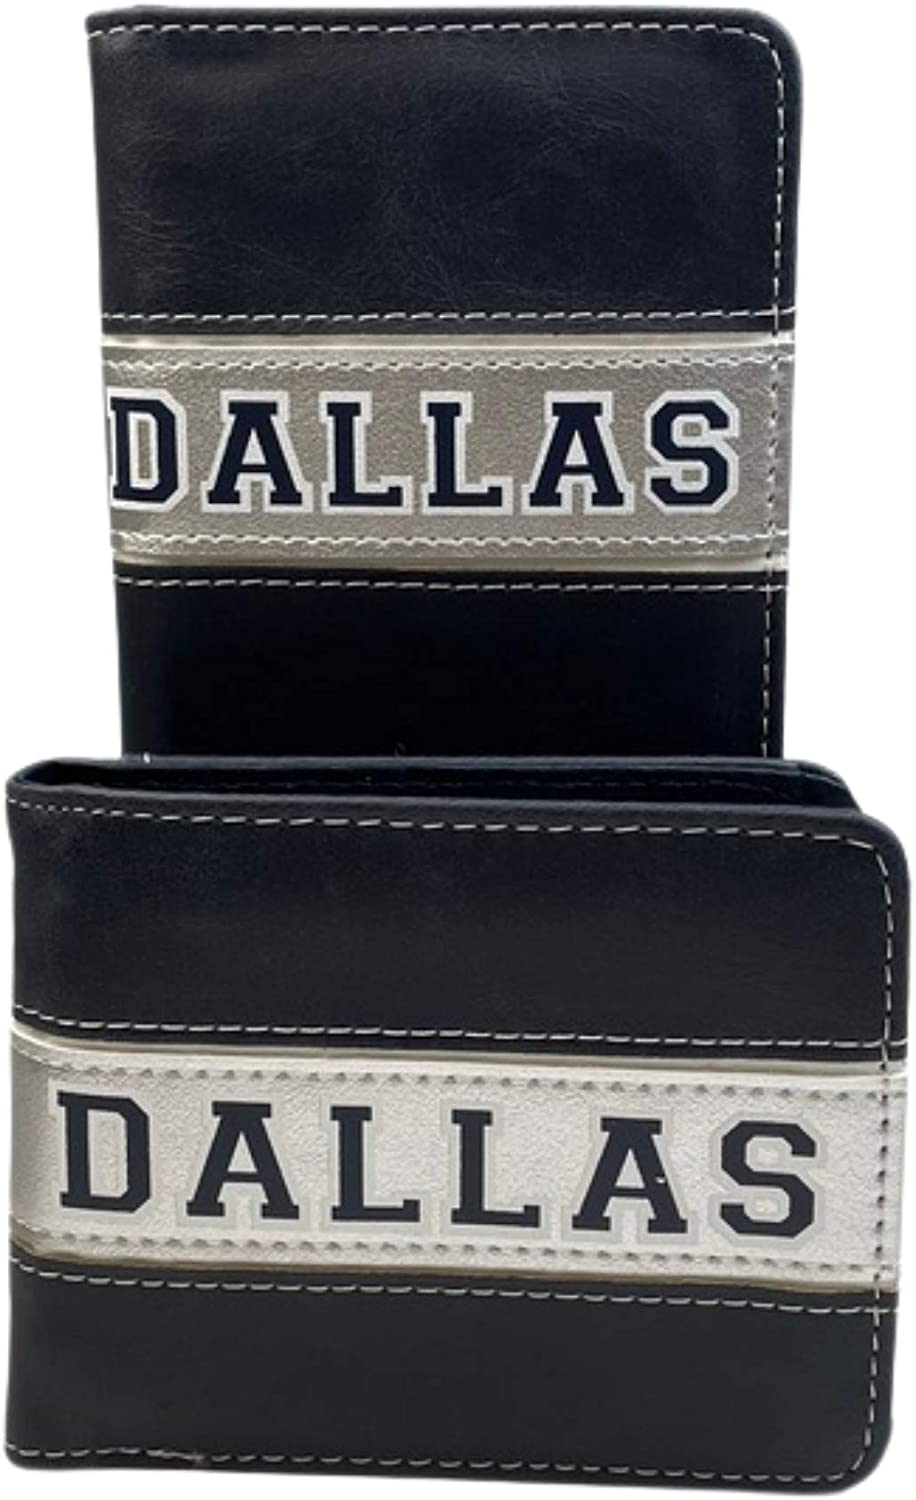 Western Style Cowboy 2 pcs Wallet Set for Men Rodeo/Texas Star/Cross/Praying Cowboy Wallet Leather Long and Short Bifold Wallet set (Dallas)